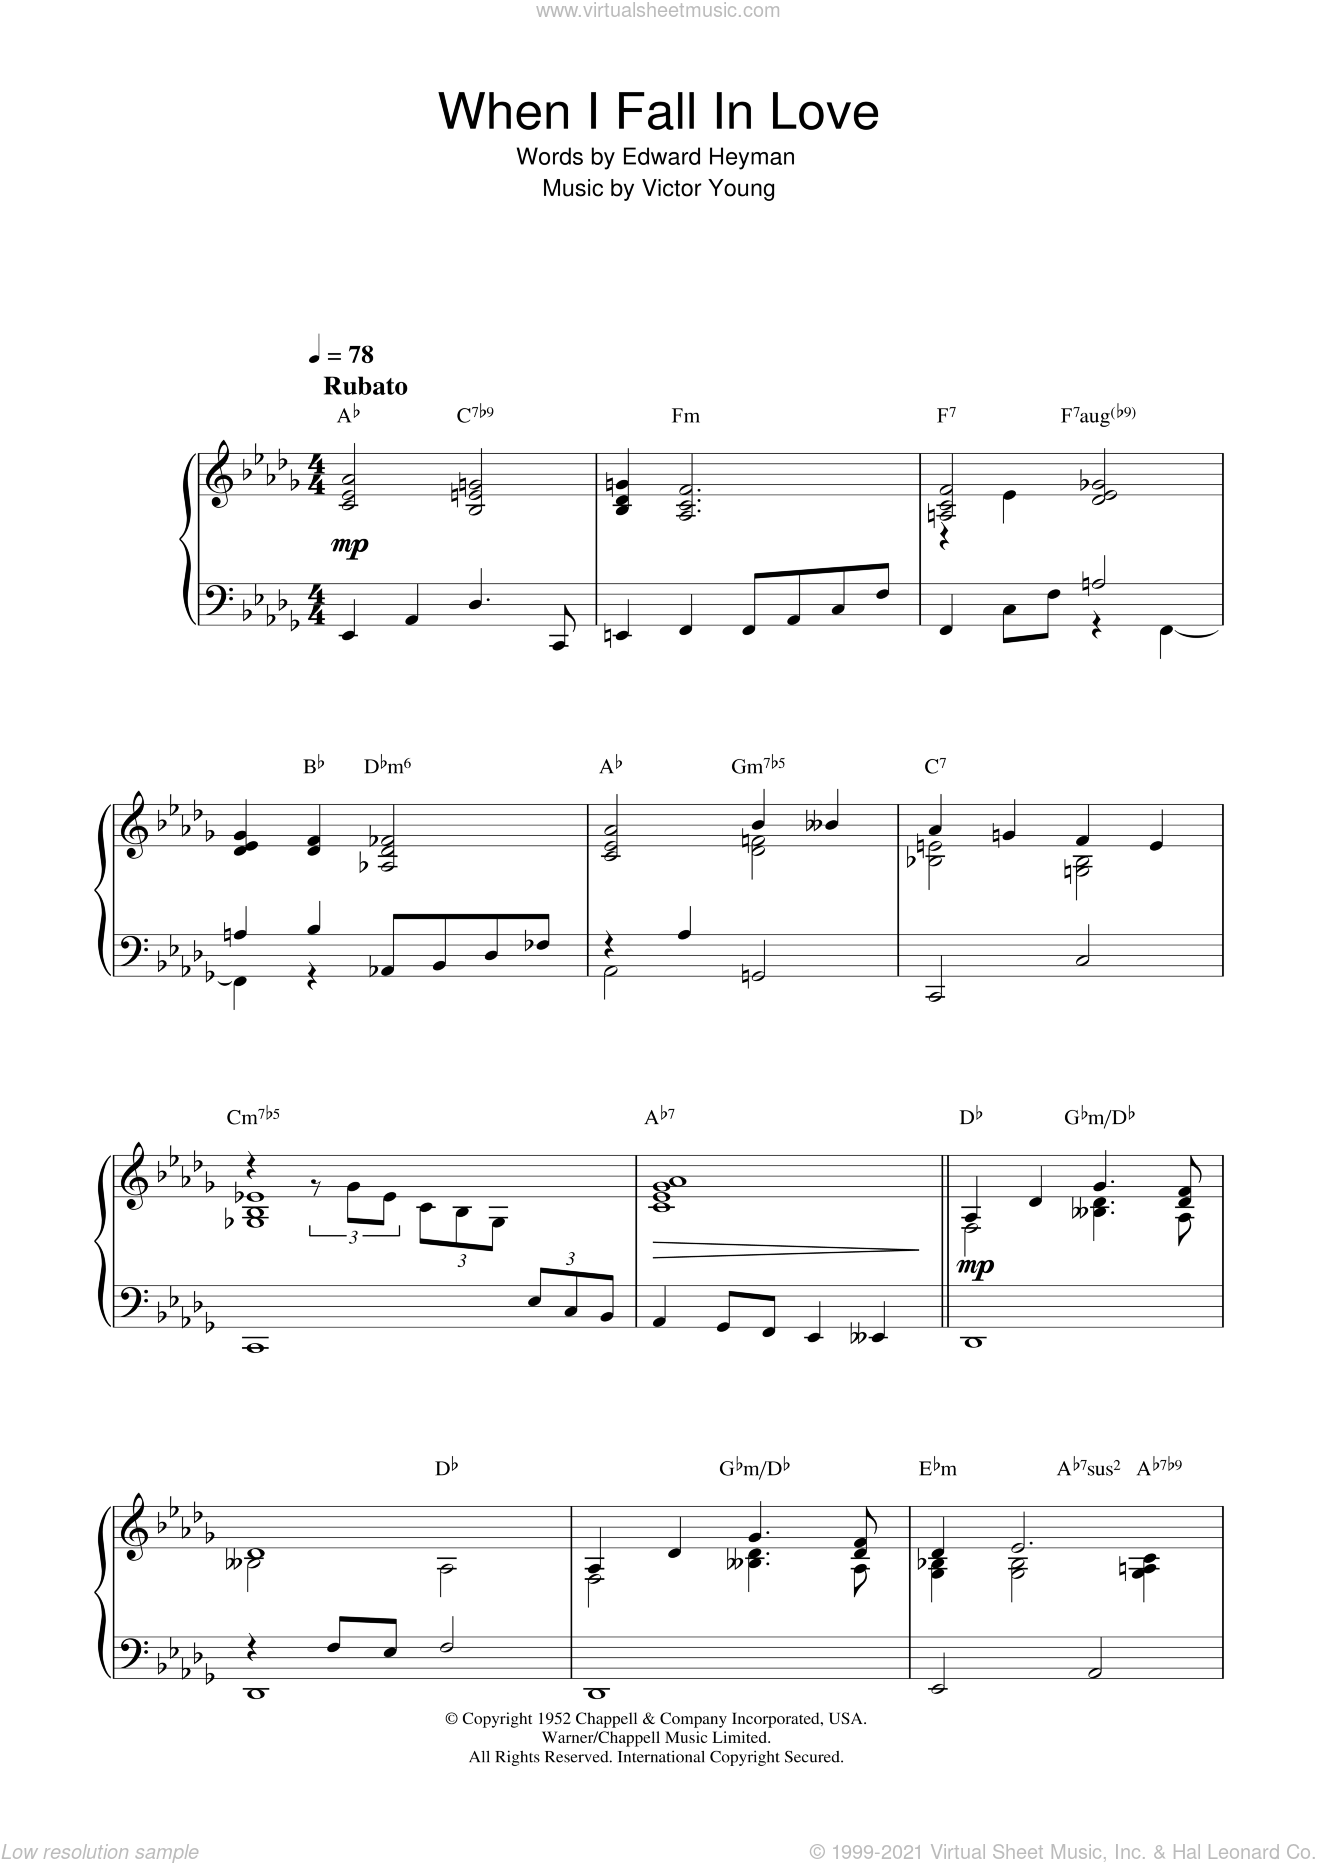 When I Fall In Love sheet music for piano solo by Edward Heyman, Nat King Cole and Victor Young, intermediate skill level